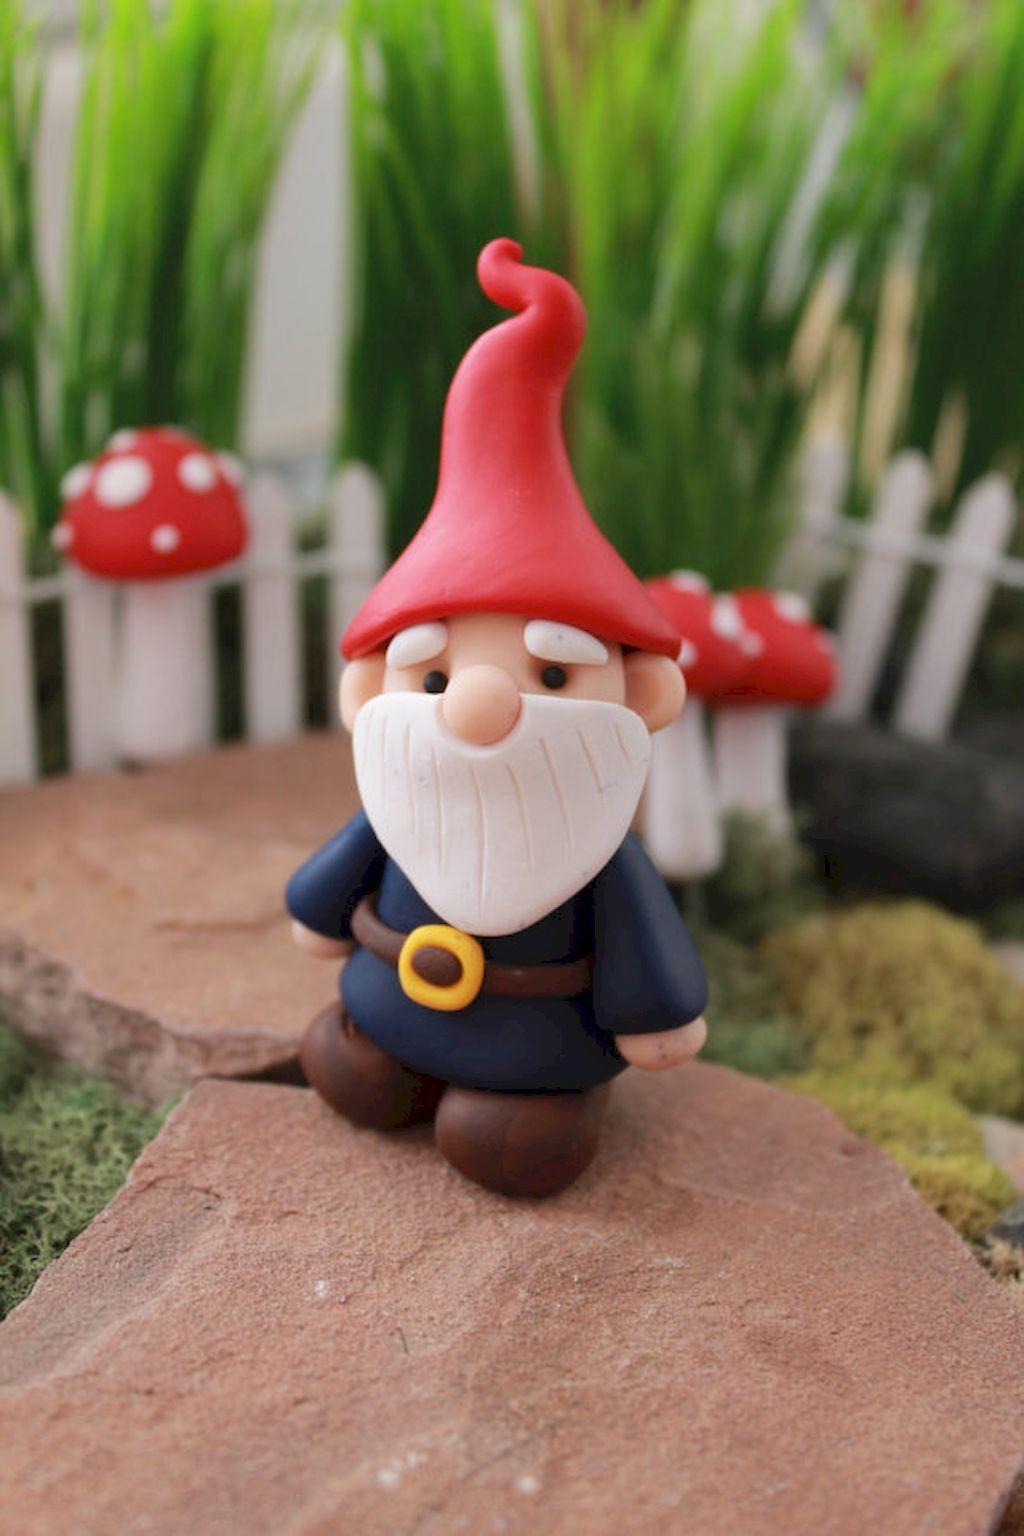 Engaging Easy To Try Diy Polymer Clay Fairy Garden Ideas Easy To Try Diy Polymer Clay Fairy Garden Ideas Polymer Miniature Gnome Garden Ideas